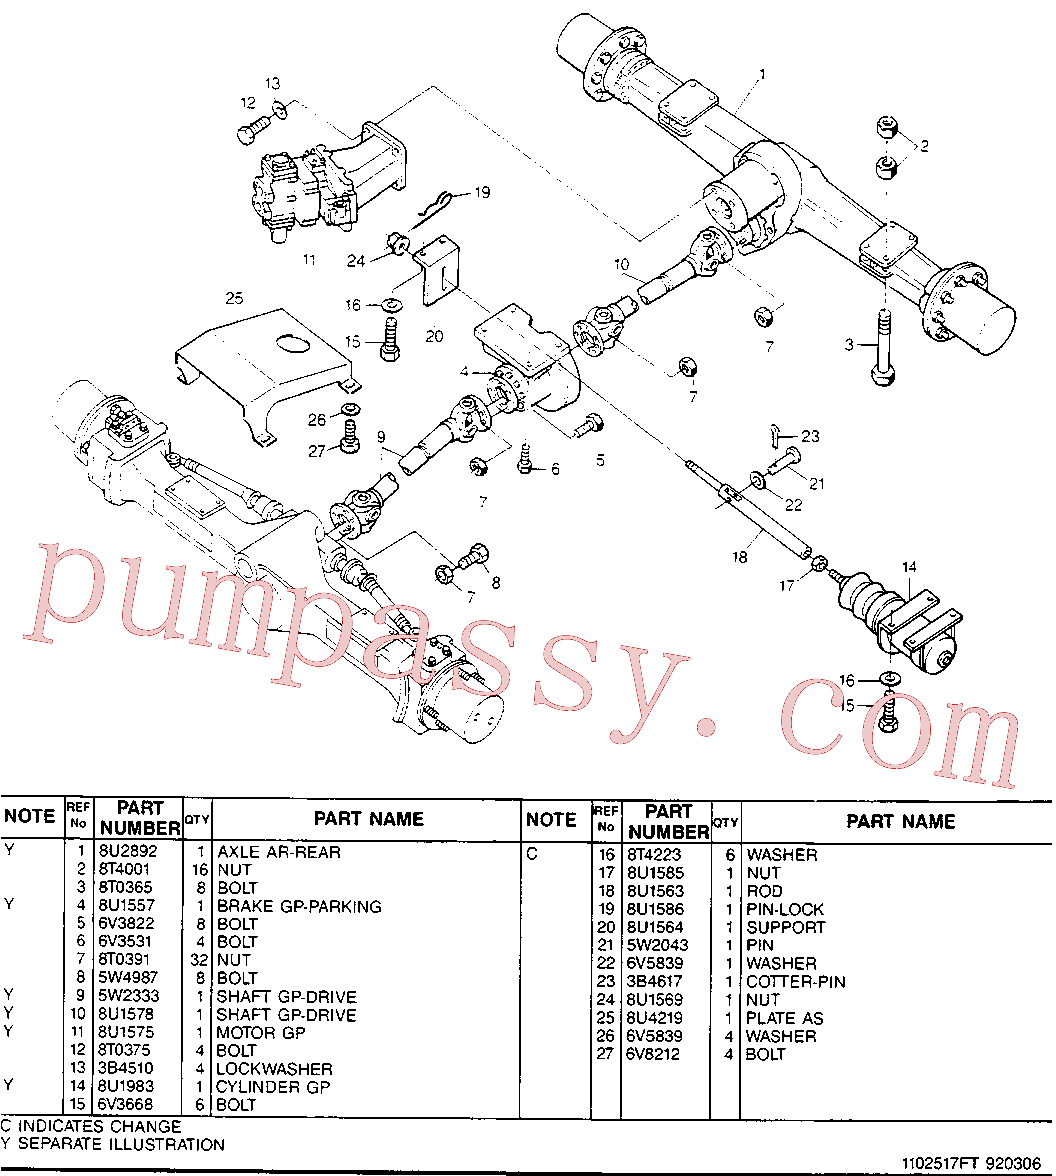 CAT 8U-2506 for M317F Excavator(EXC) chassis & undercarriage 8U-2879 Assembly